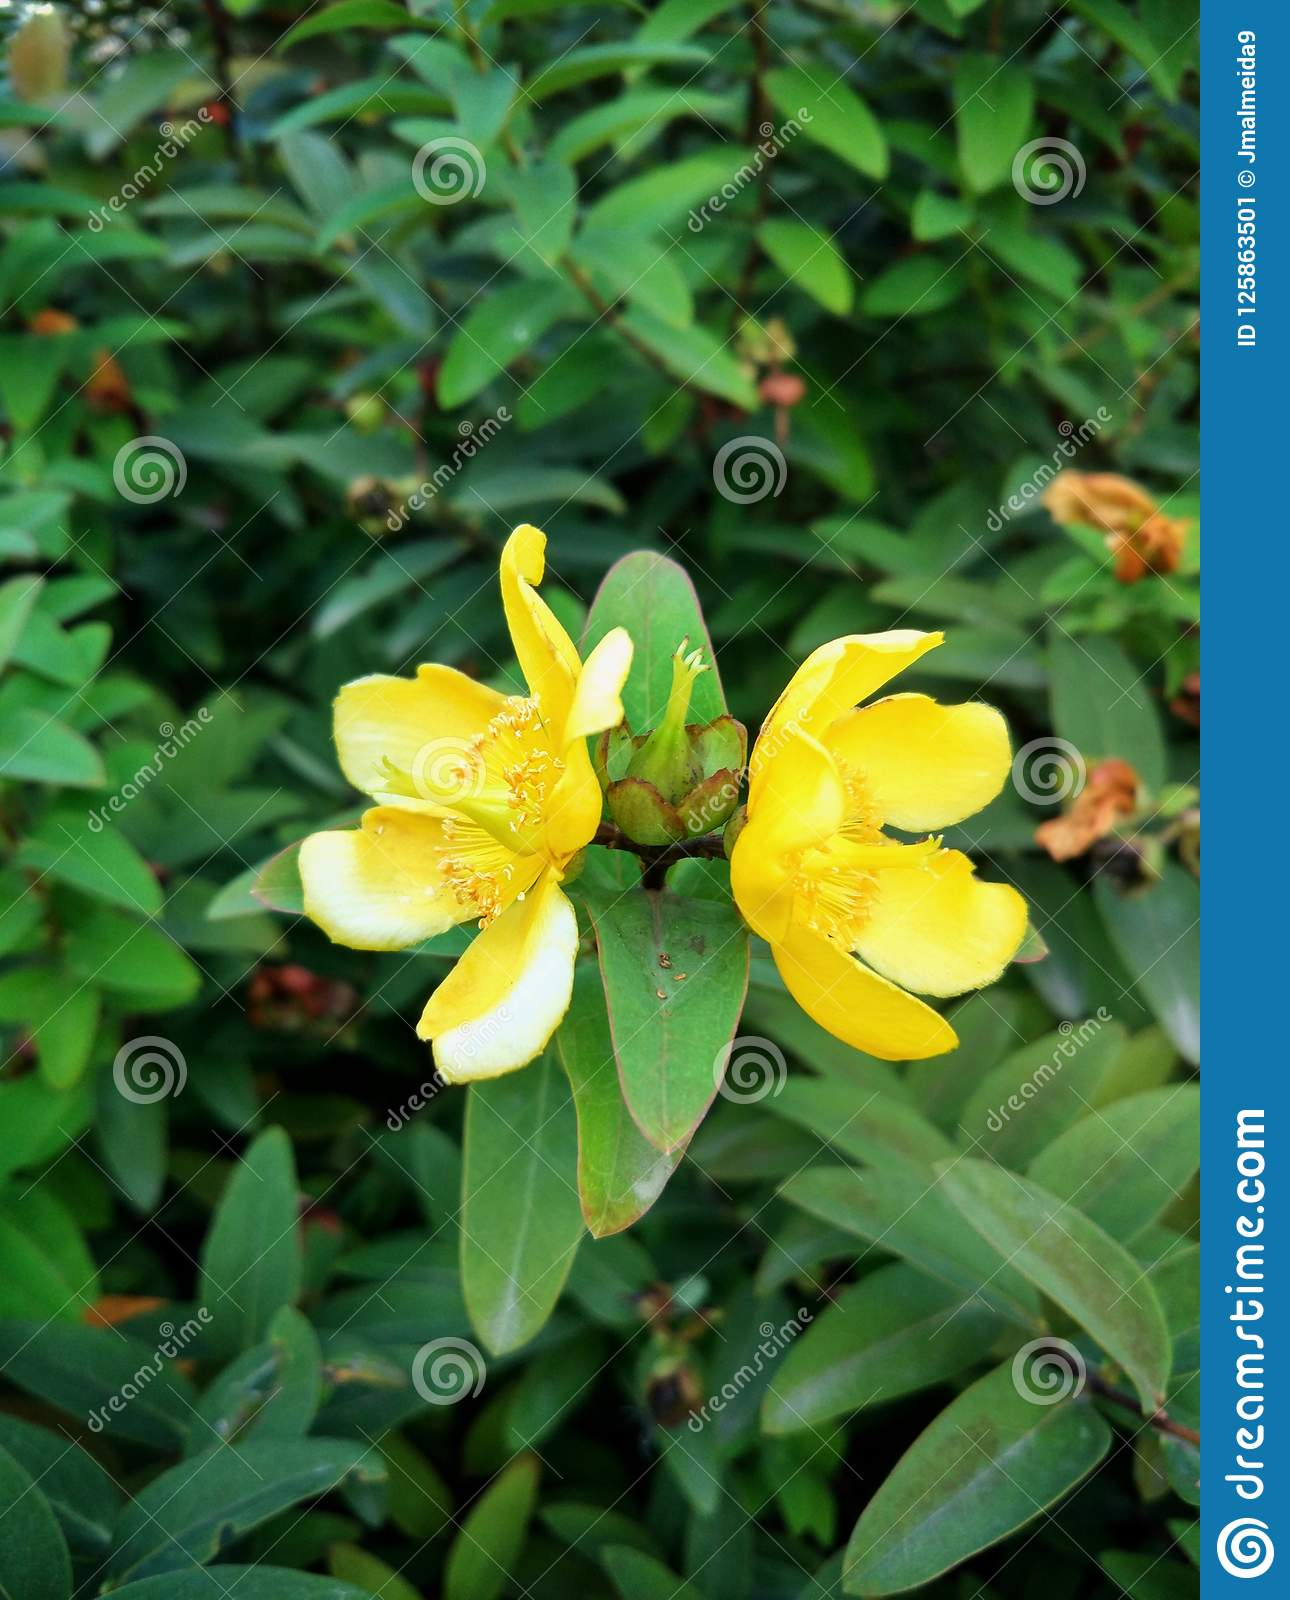 Two blooming yellow flower on a green background of leaves